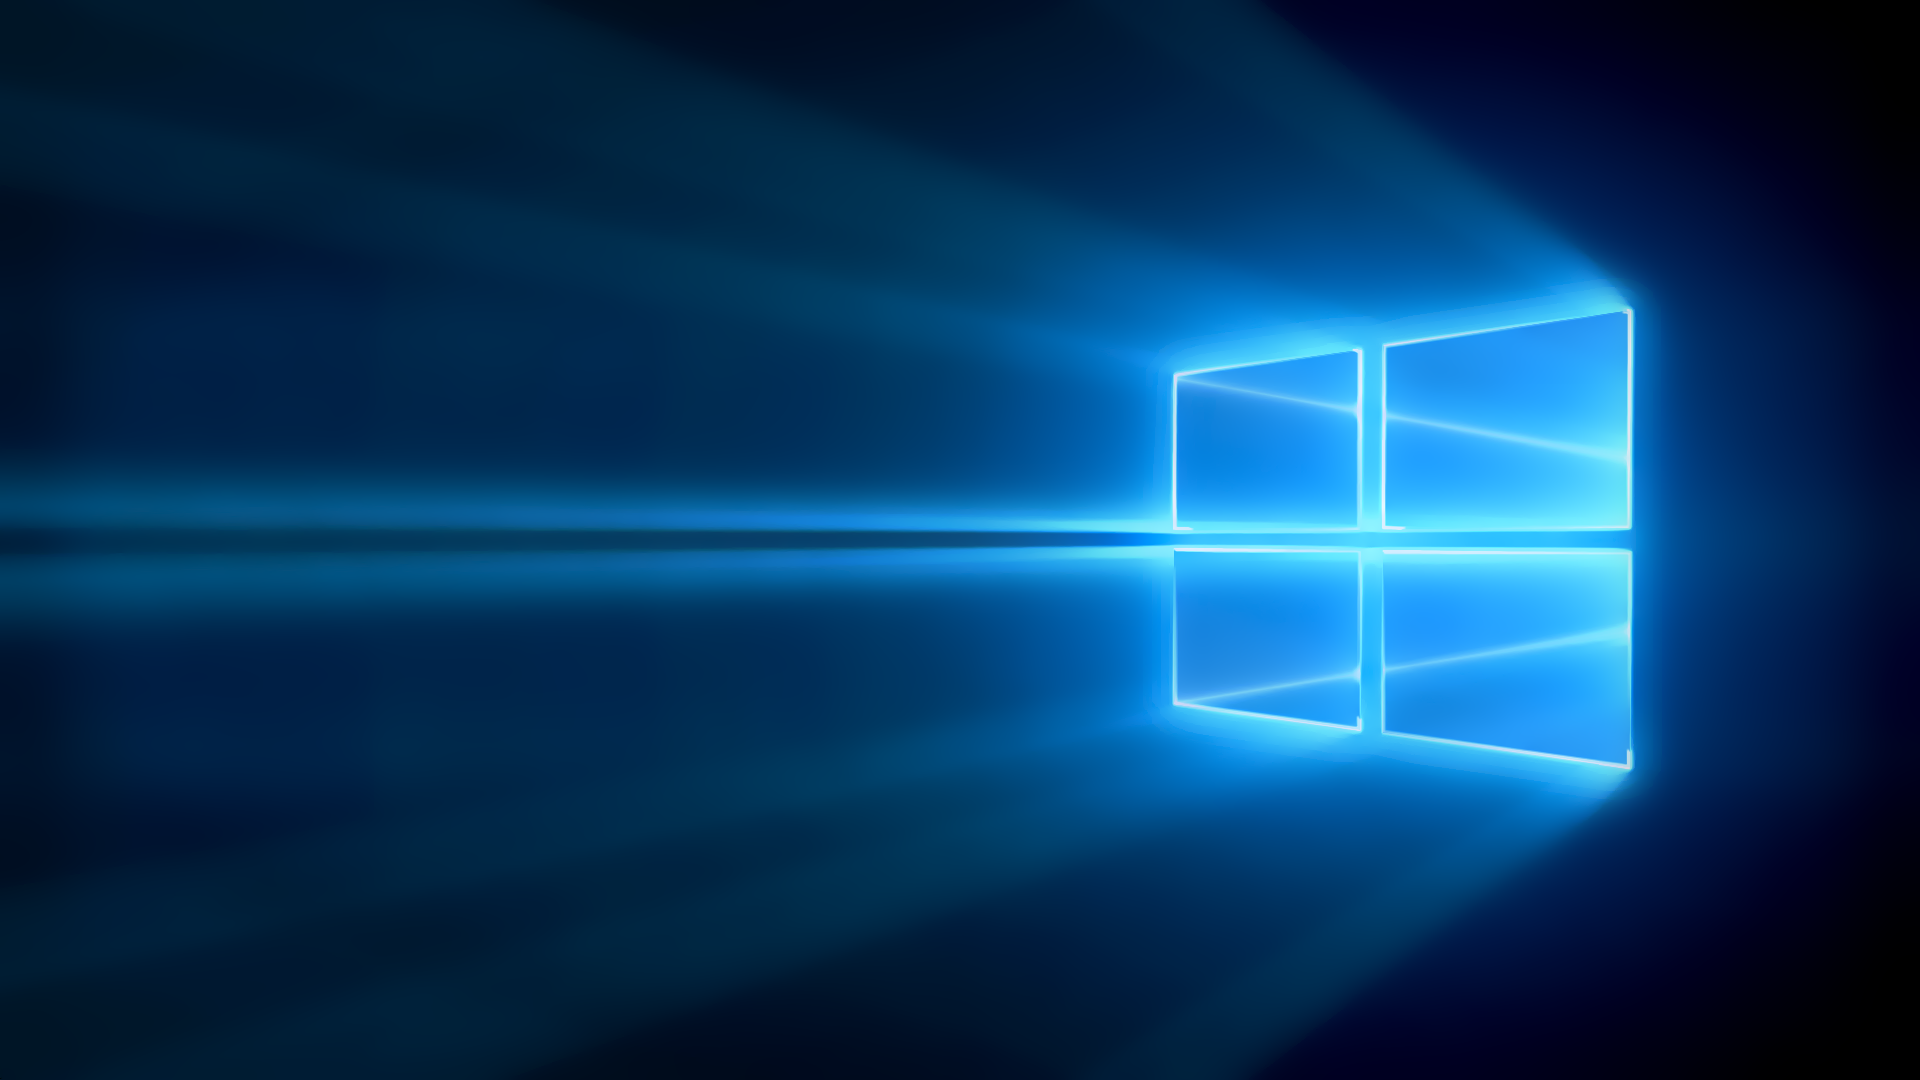 Windows_10_Hero_Background_Wallpaper